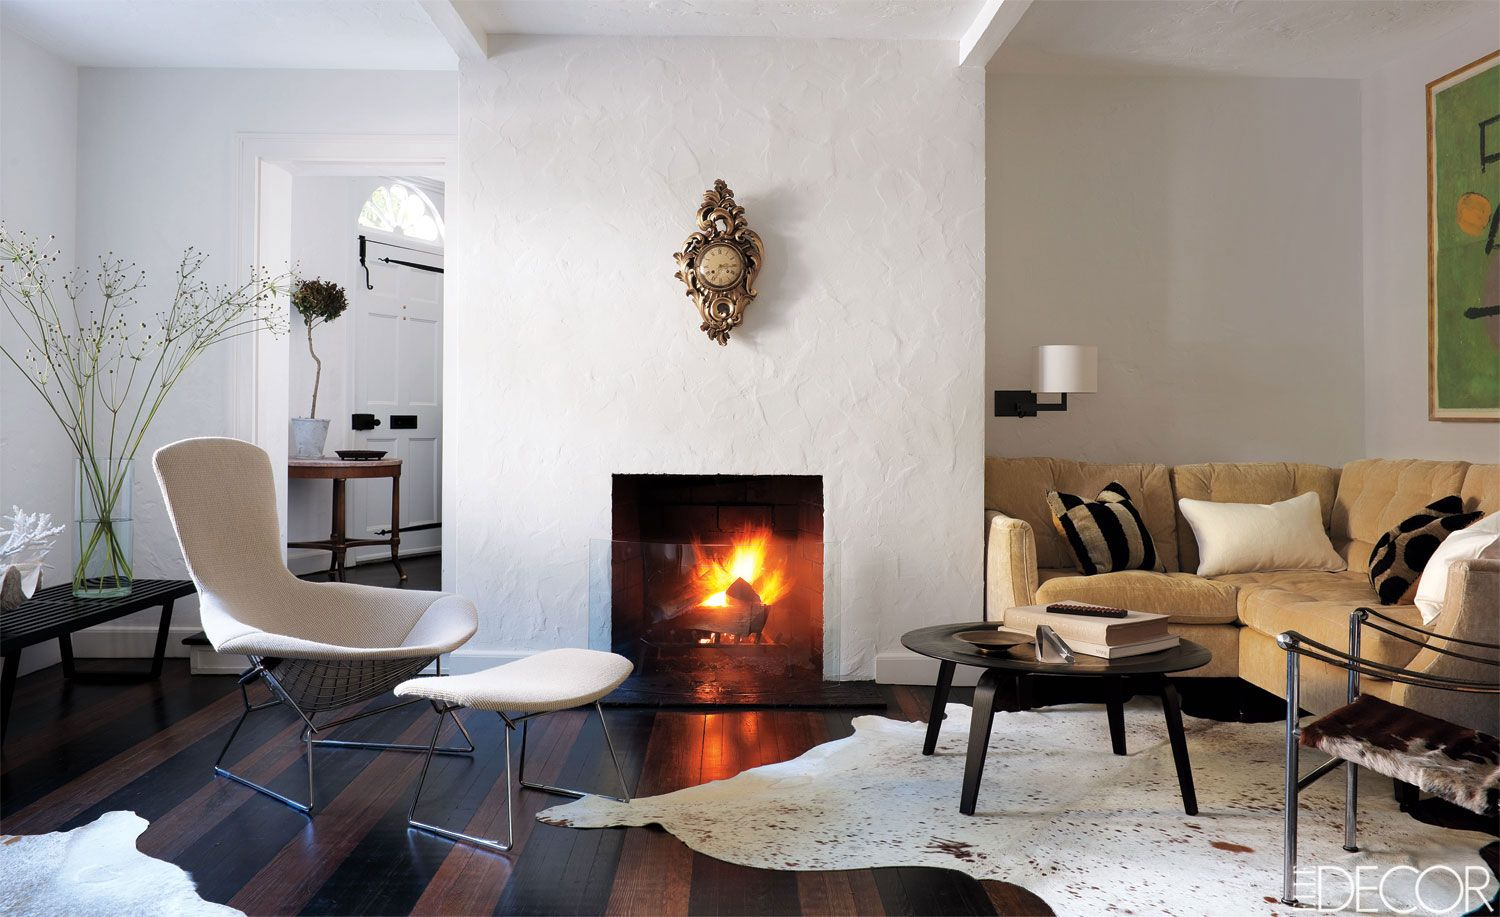 21 unique fireplace mantel ideas modern fireplace designs - Designs For Fireplaces